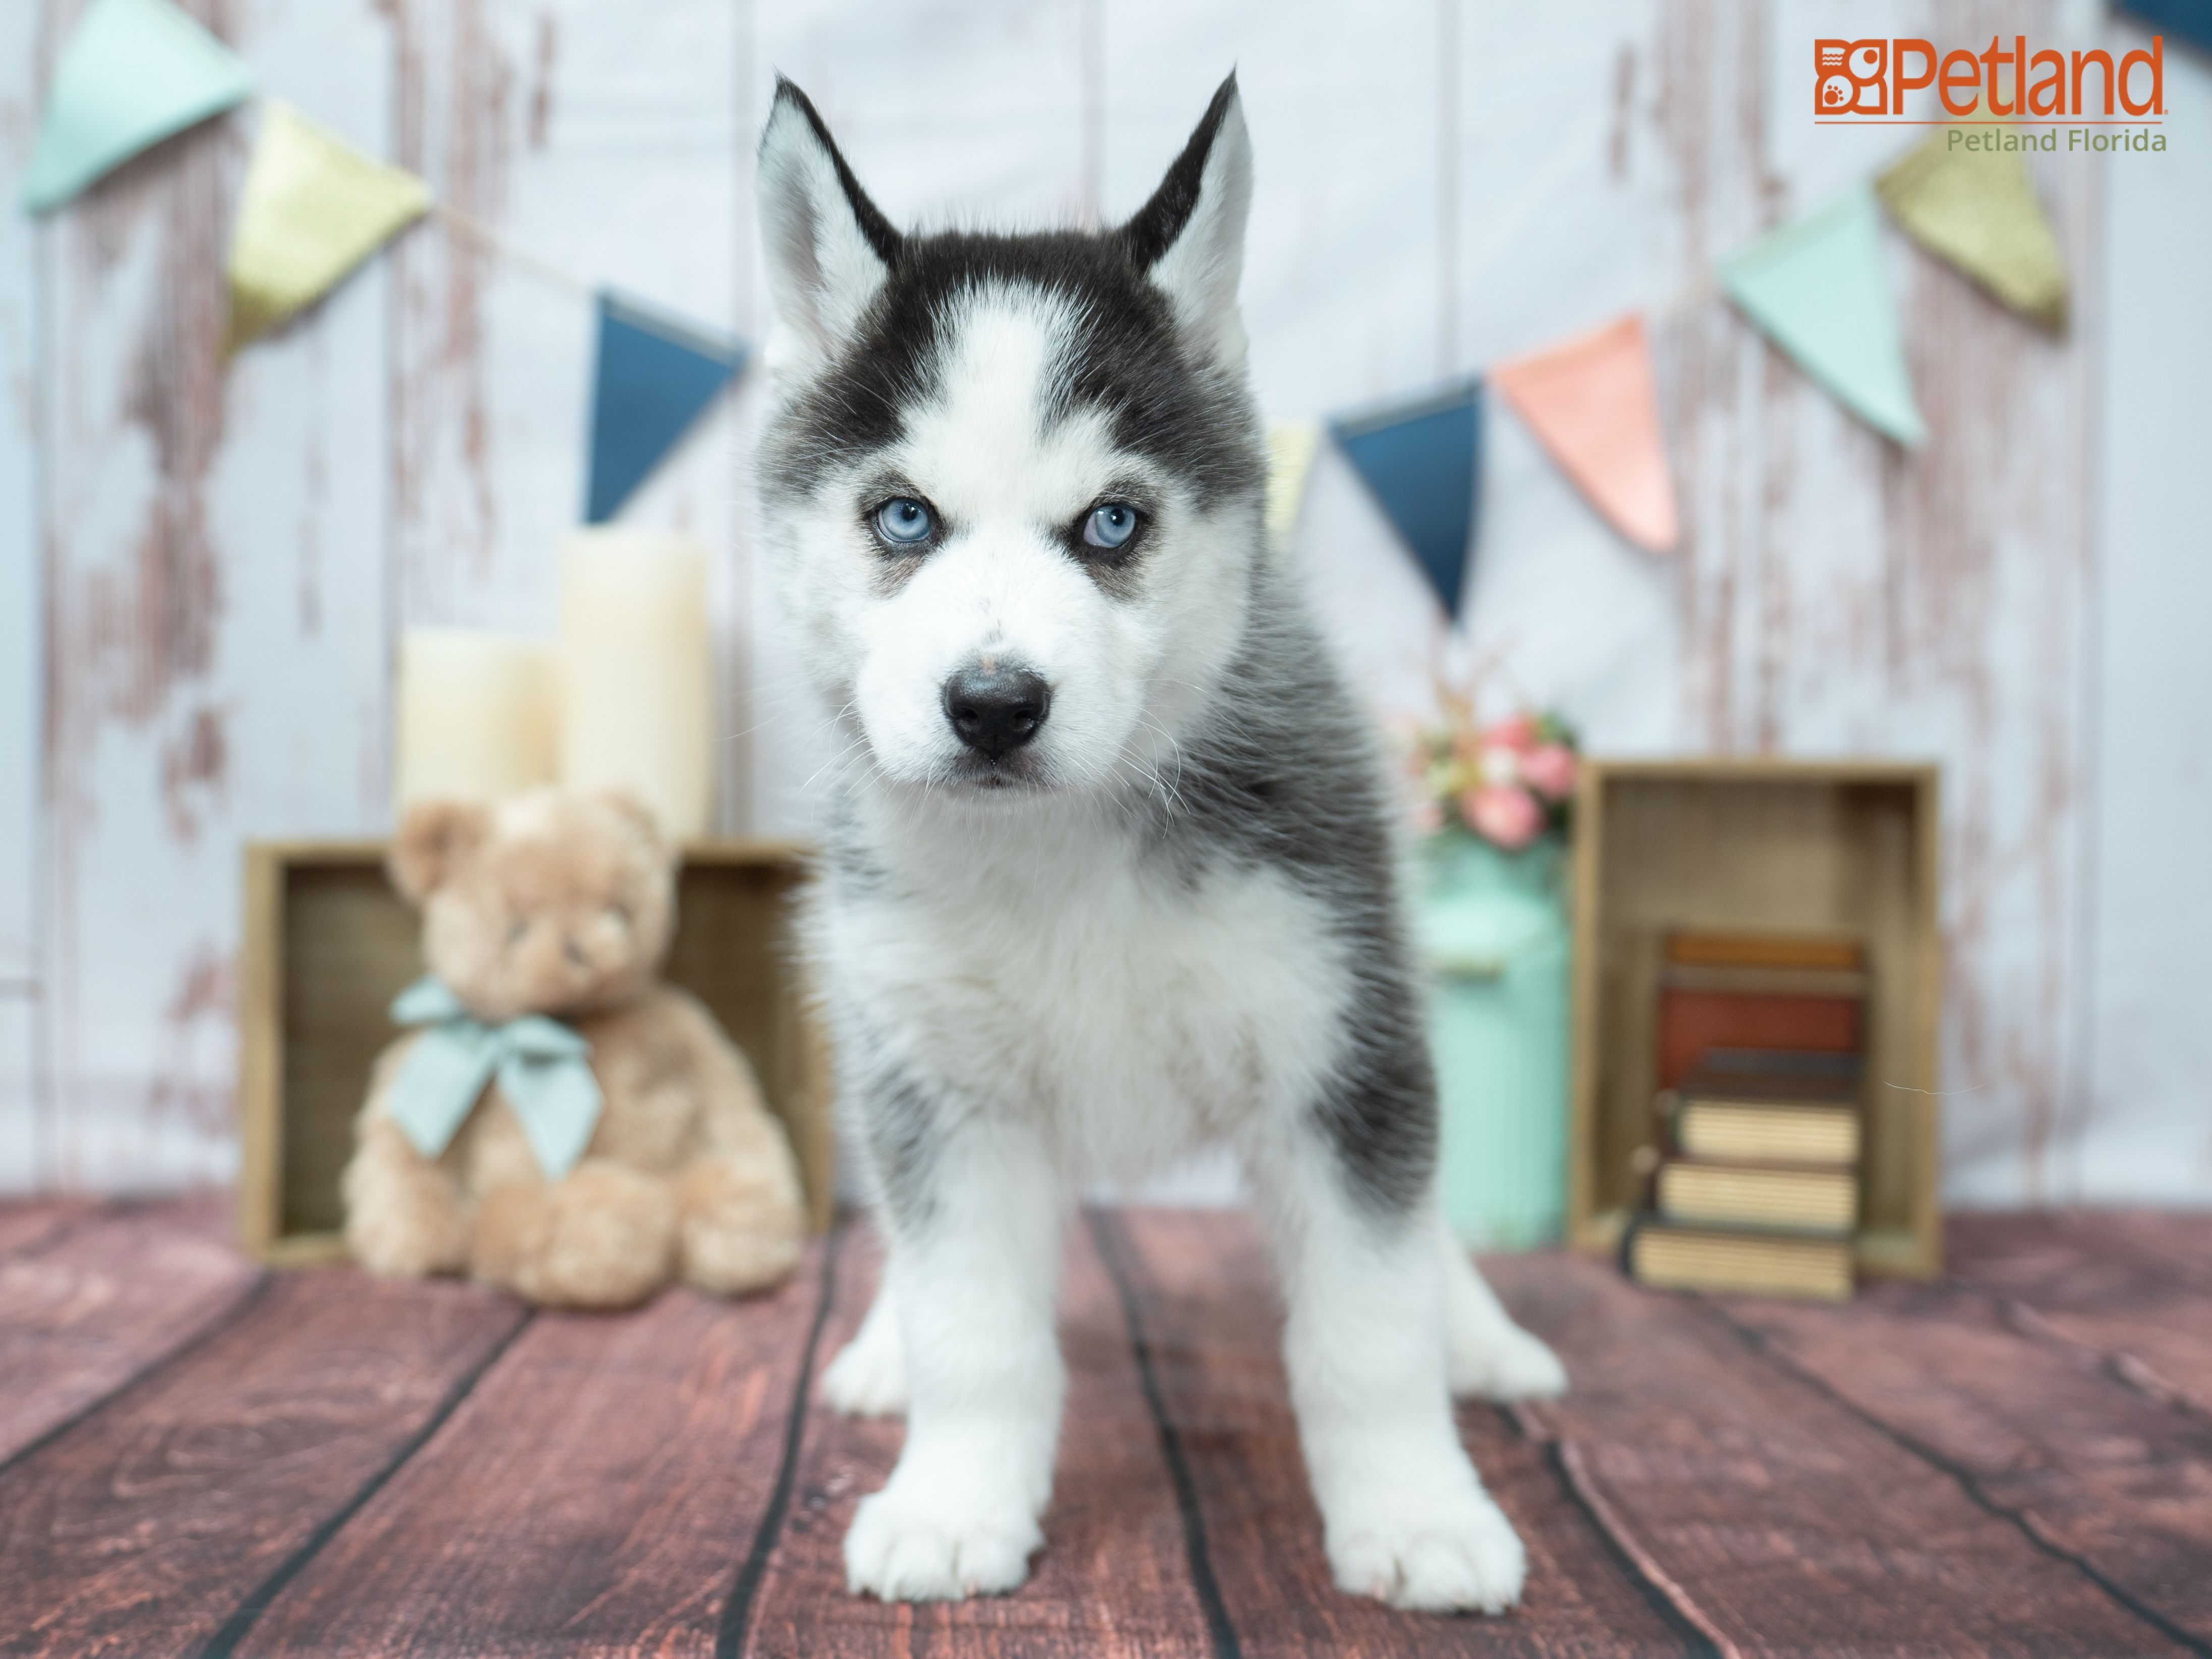 Petland Florida Has Siberian Husky Puppies For Sale Check Out All Our Available Puppies Siberi In 2020 Husky Puppies For Sale Puppy Friends Siberian Husky Puppies